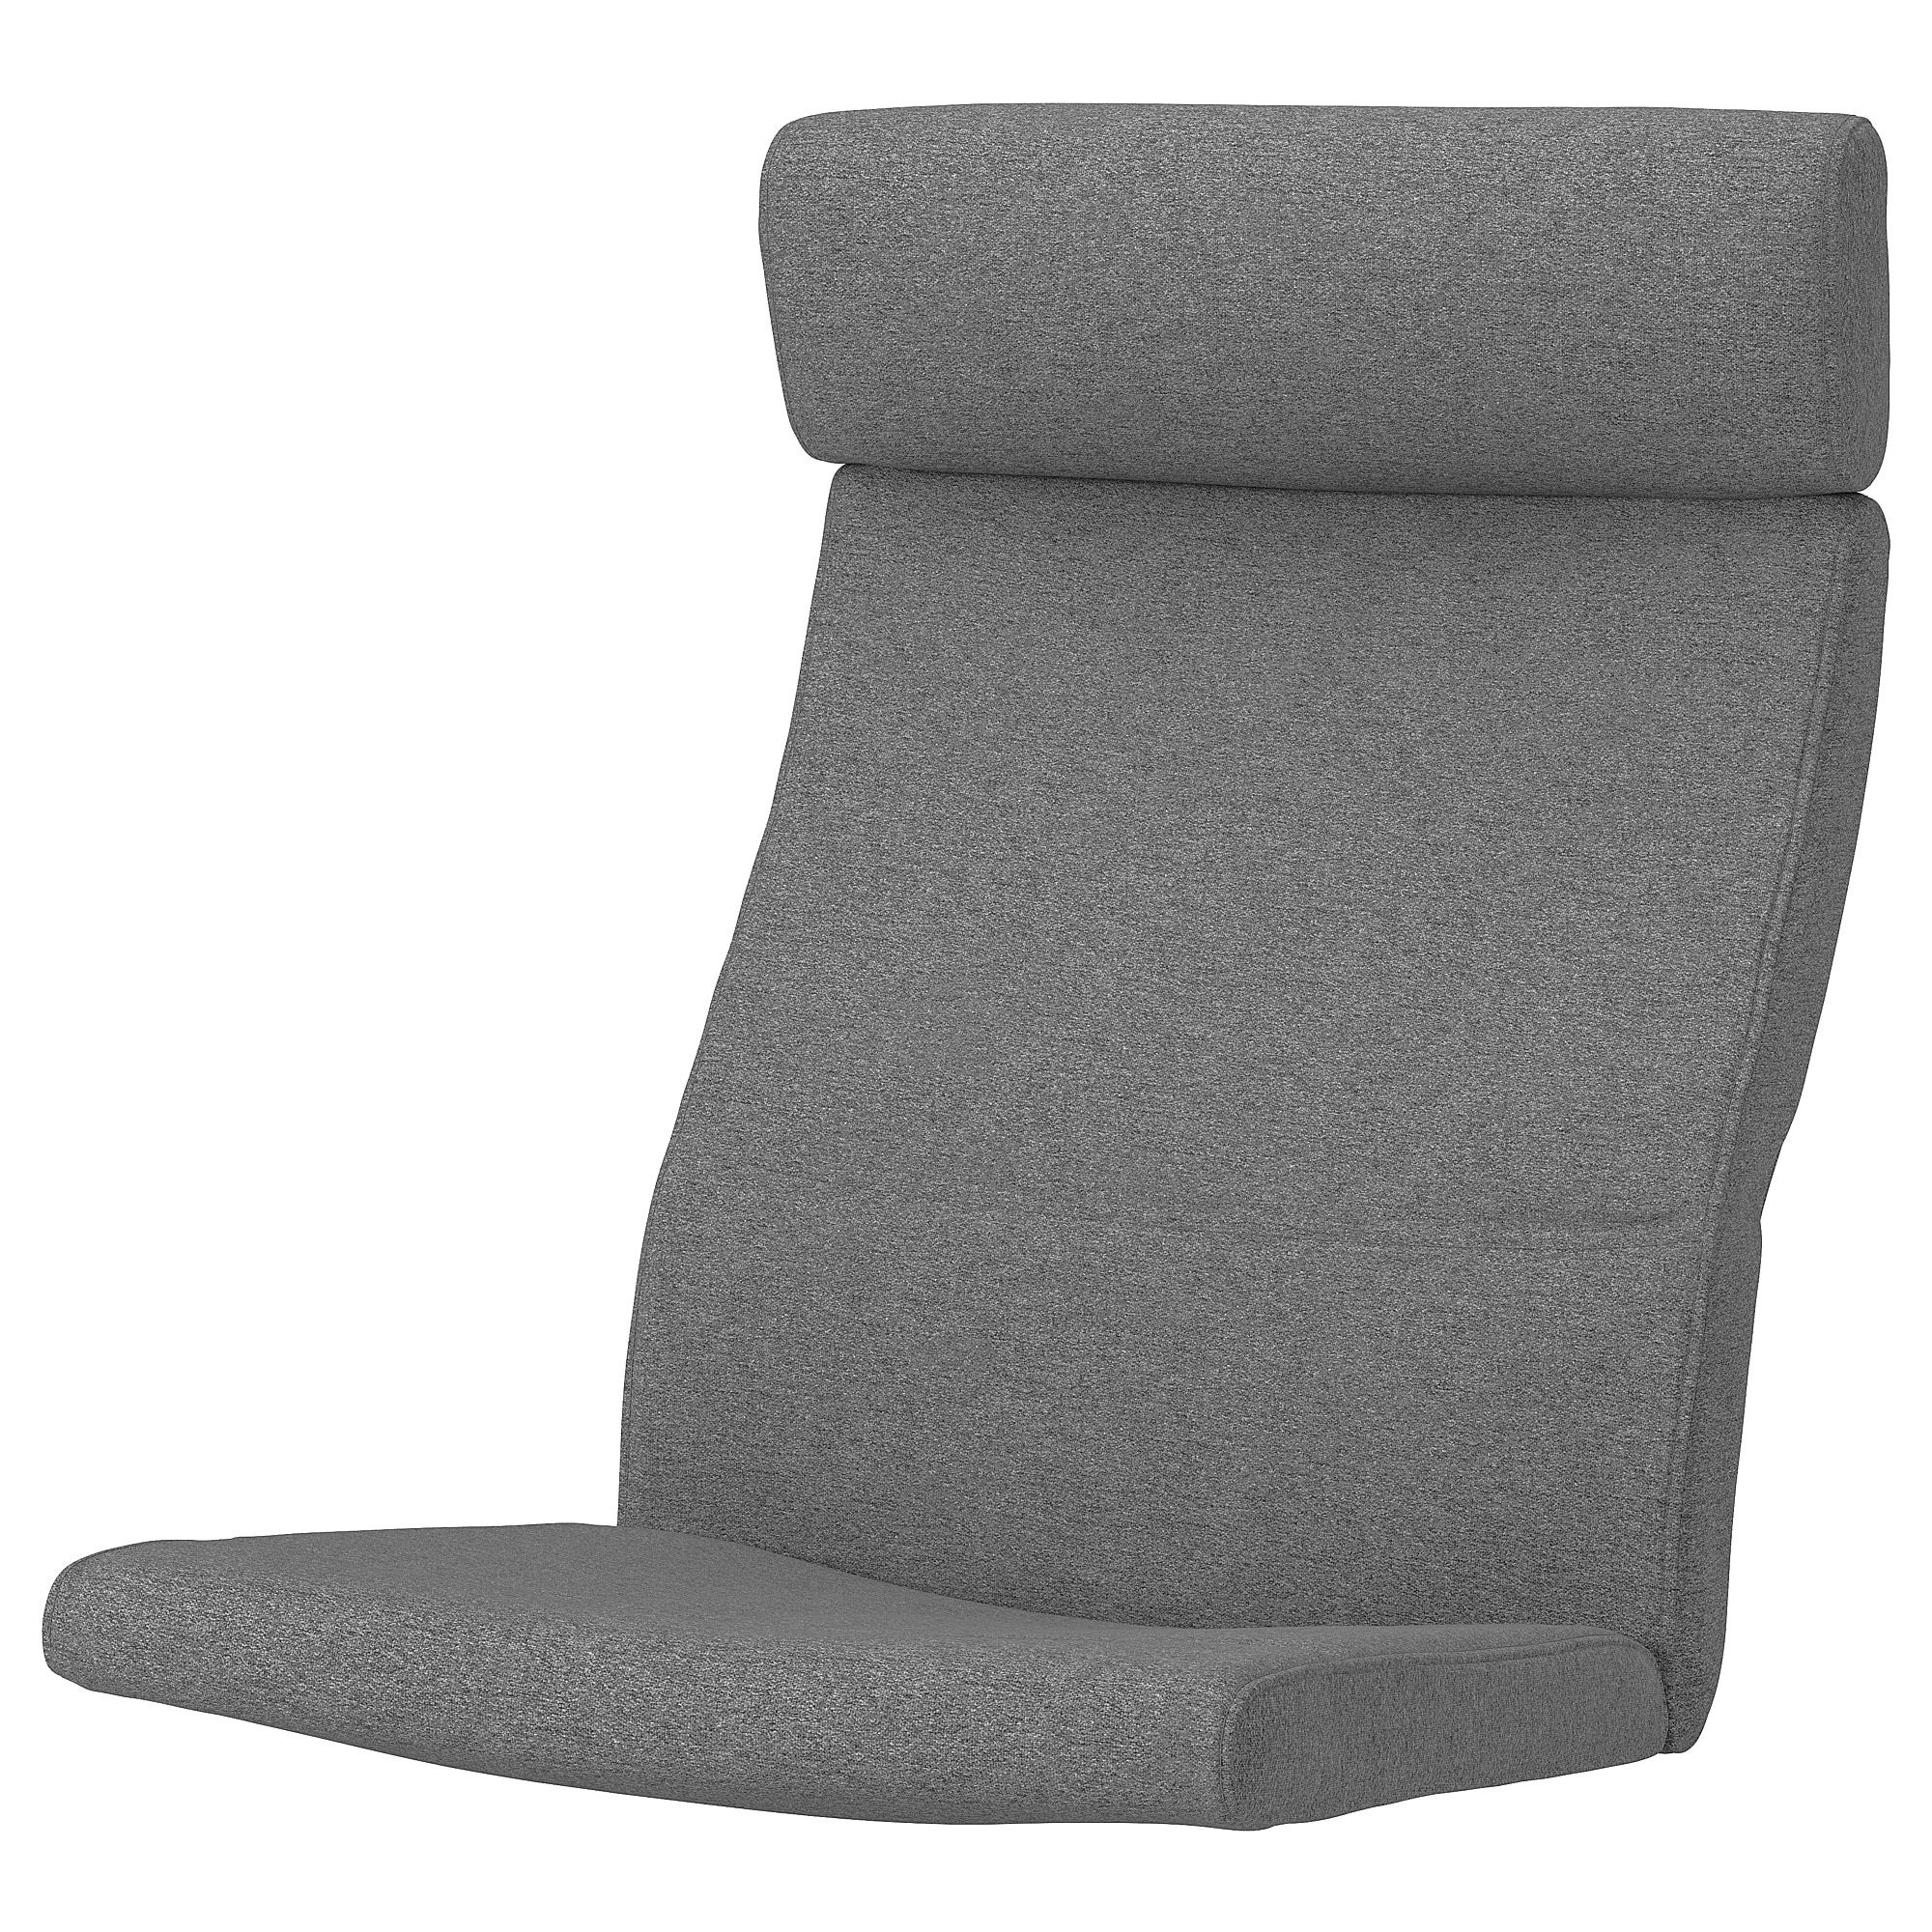 Make A Replacement Cover For An Ikea Poang Chair Ikea Poang